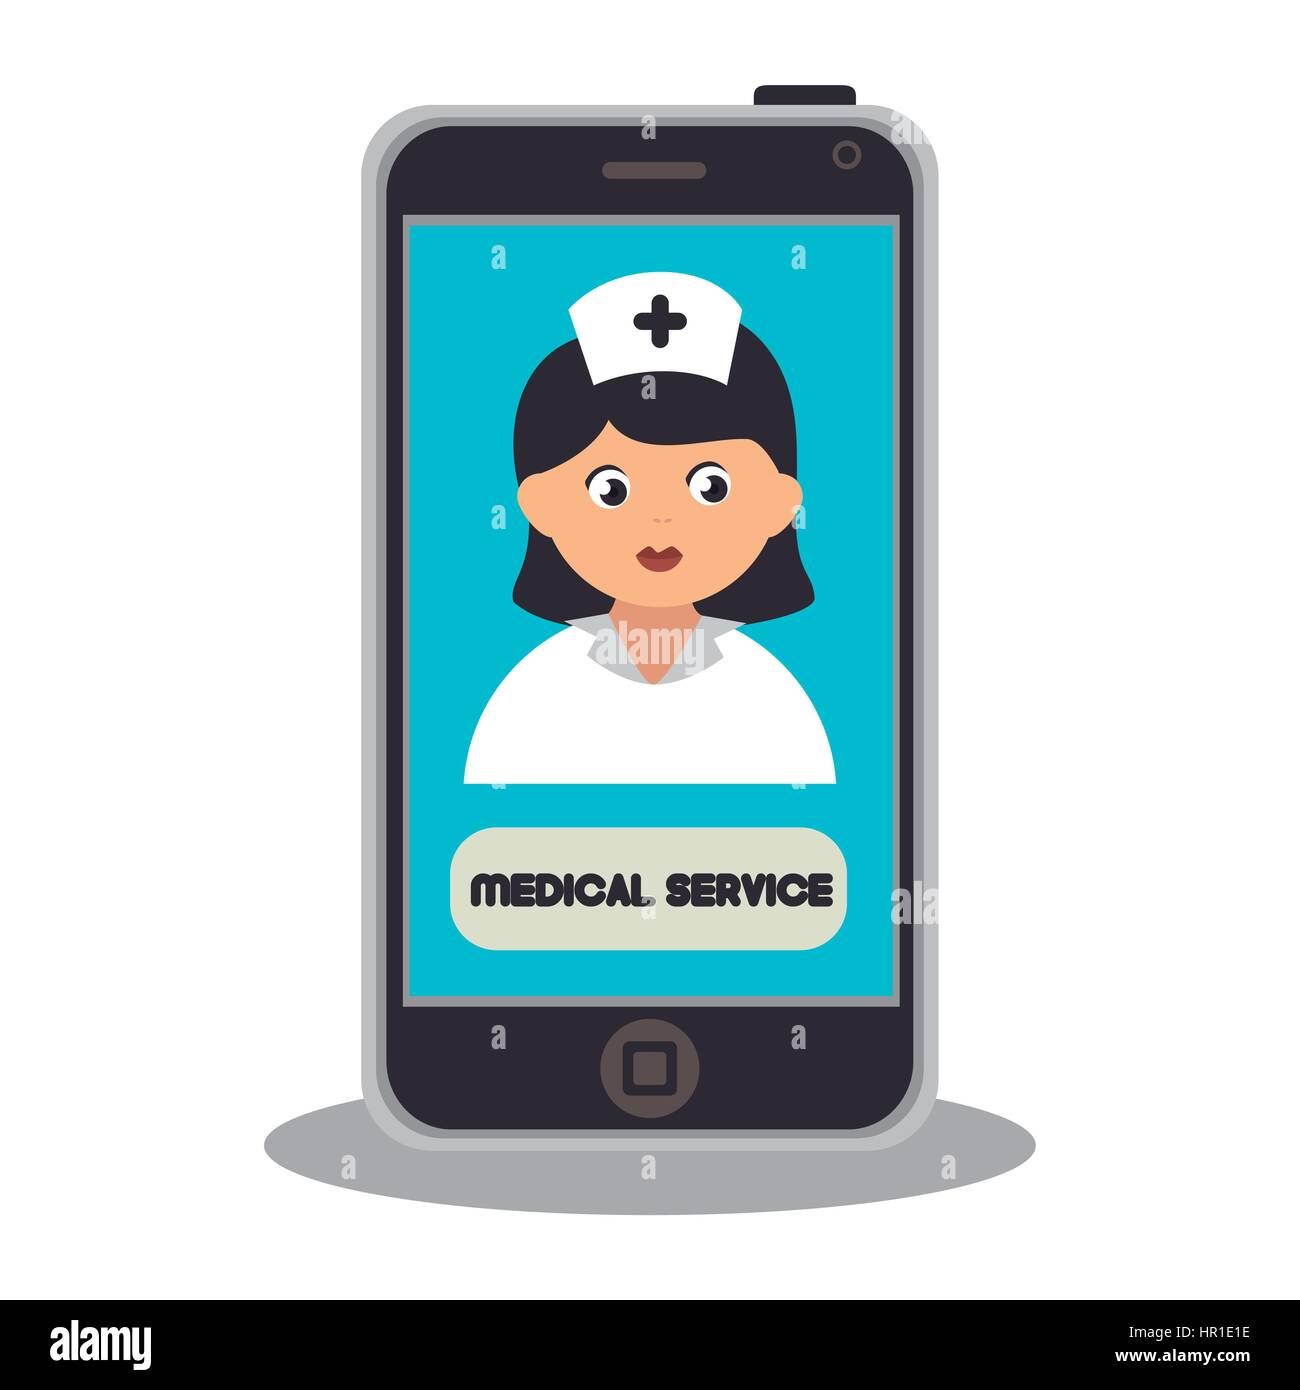 healthcare professional avatar character - Stock Image